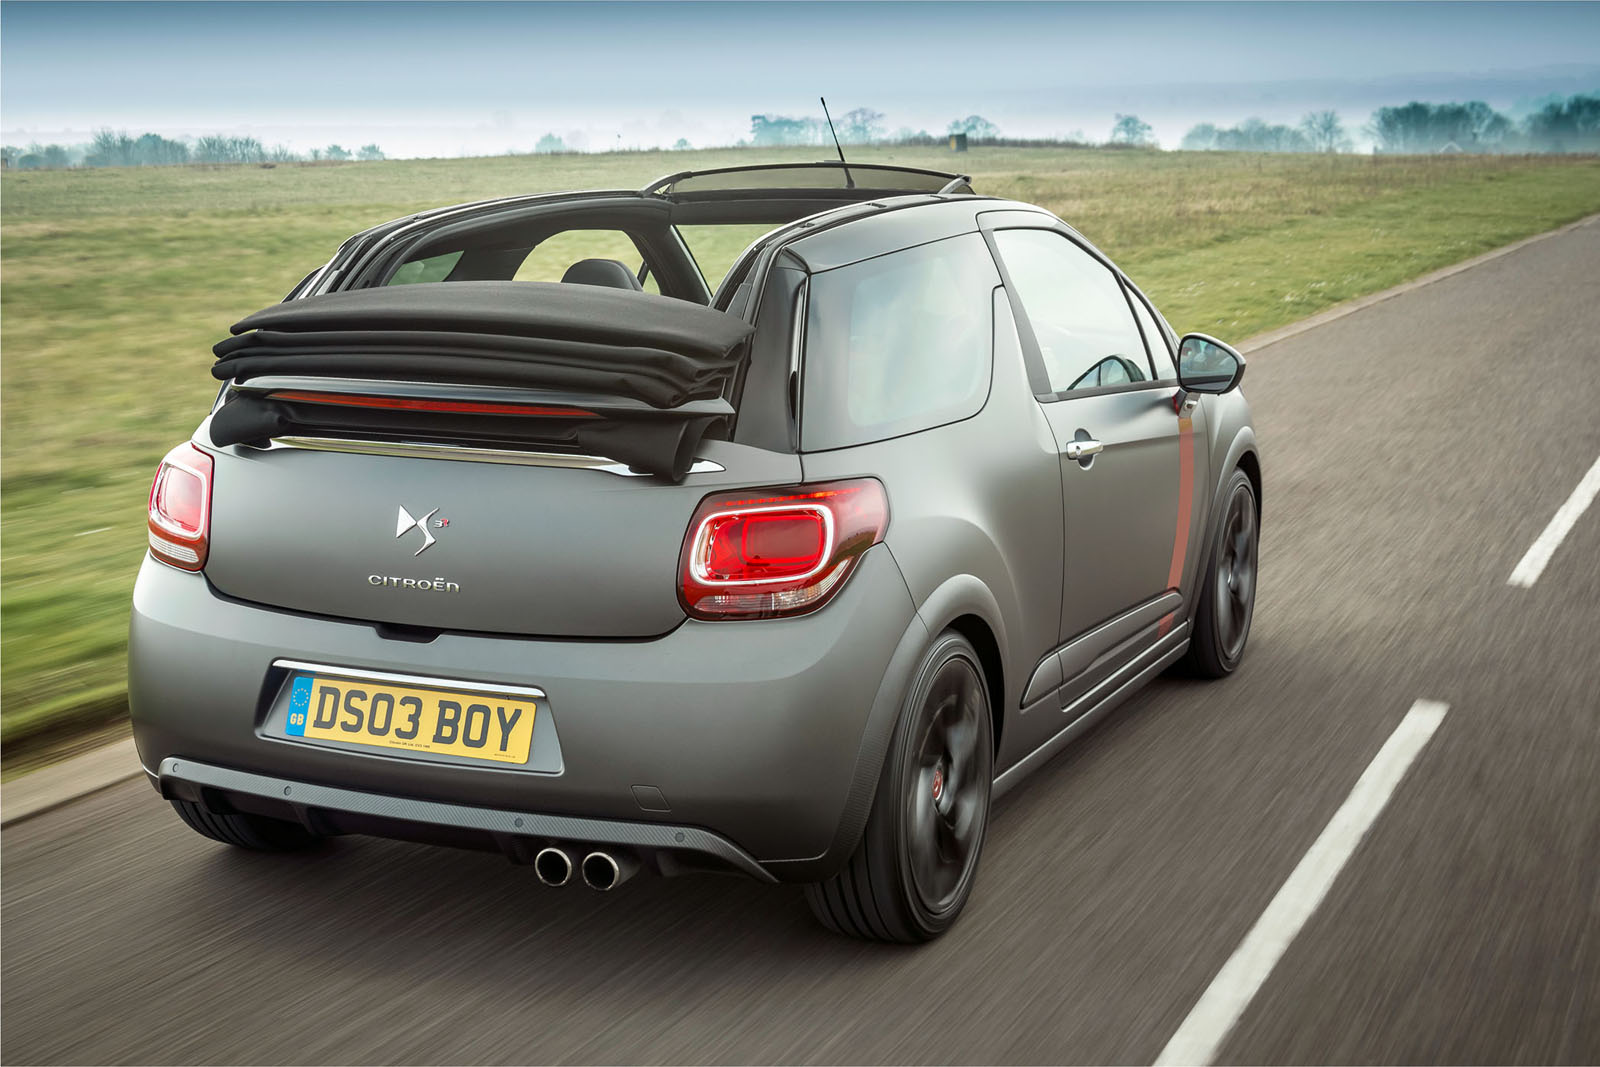 citroen prices ds3 cabrio racing in britain limits. Black Bedroom Furniture Sets. Home Design Ideas